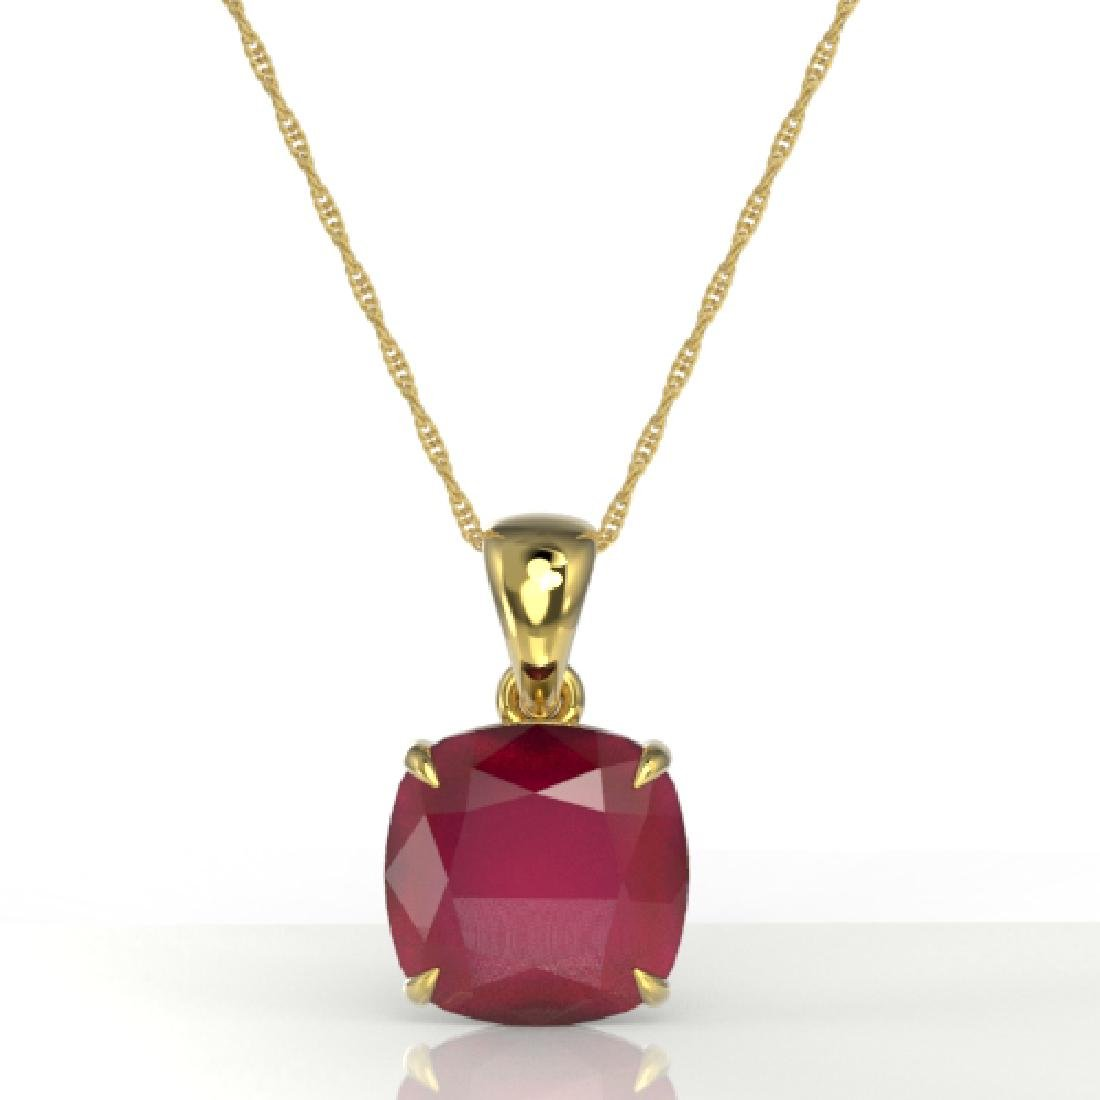 6 Cushion Cut Ruby Designer Inspired Solitaire necklace - 2